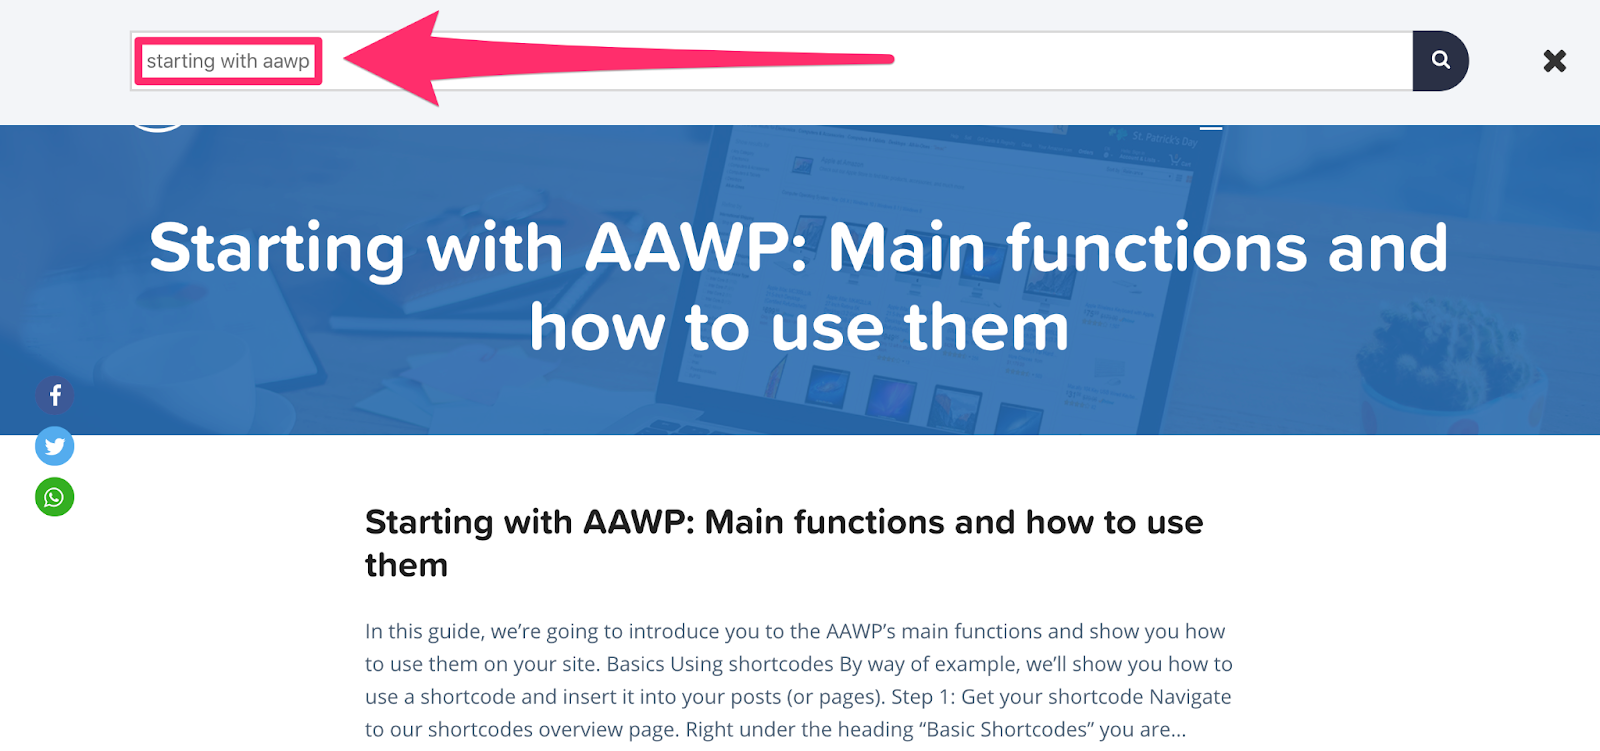 aawp search function on website for finding help docs